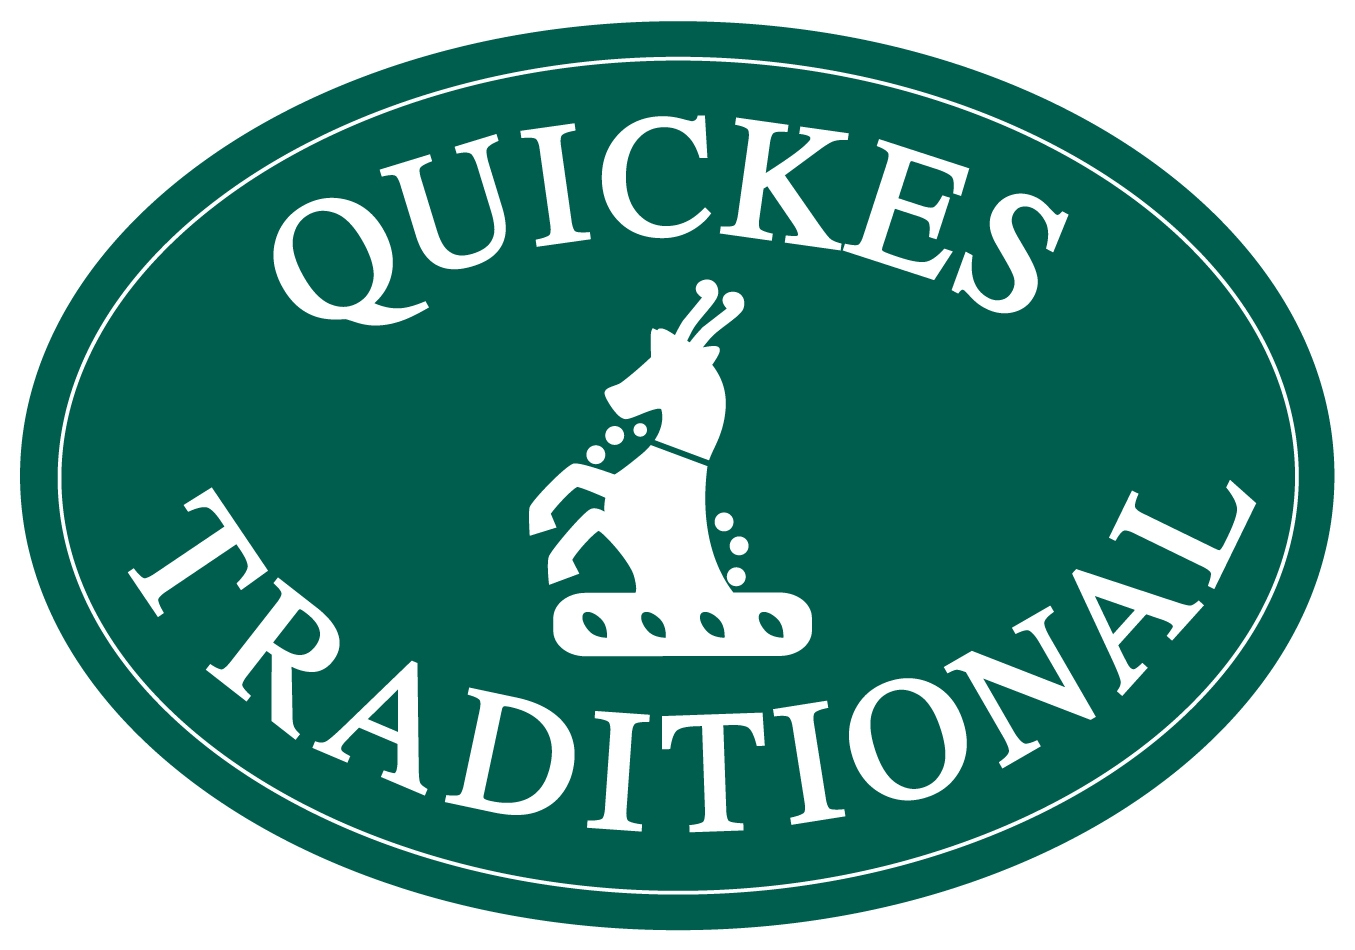 Quickes & Mary Quicke